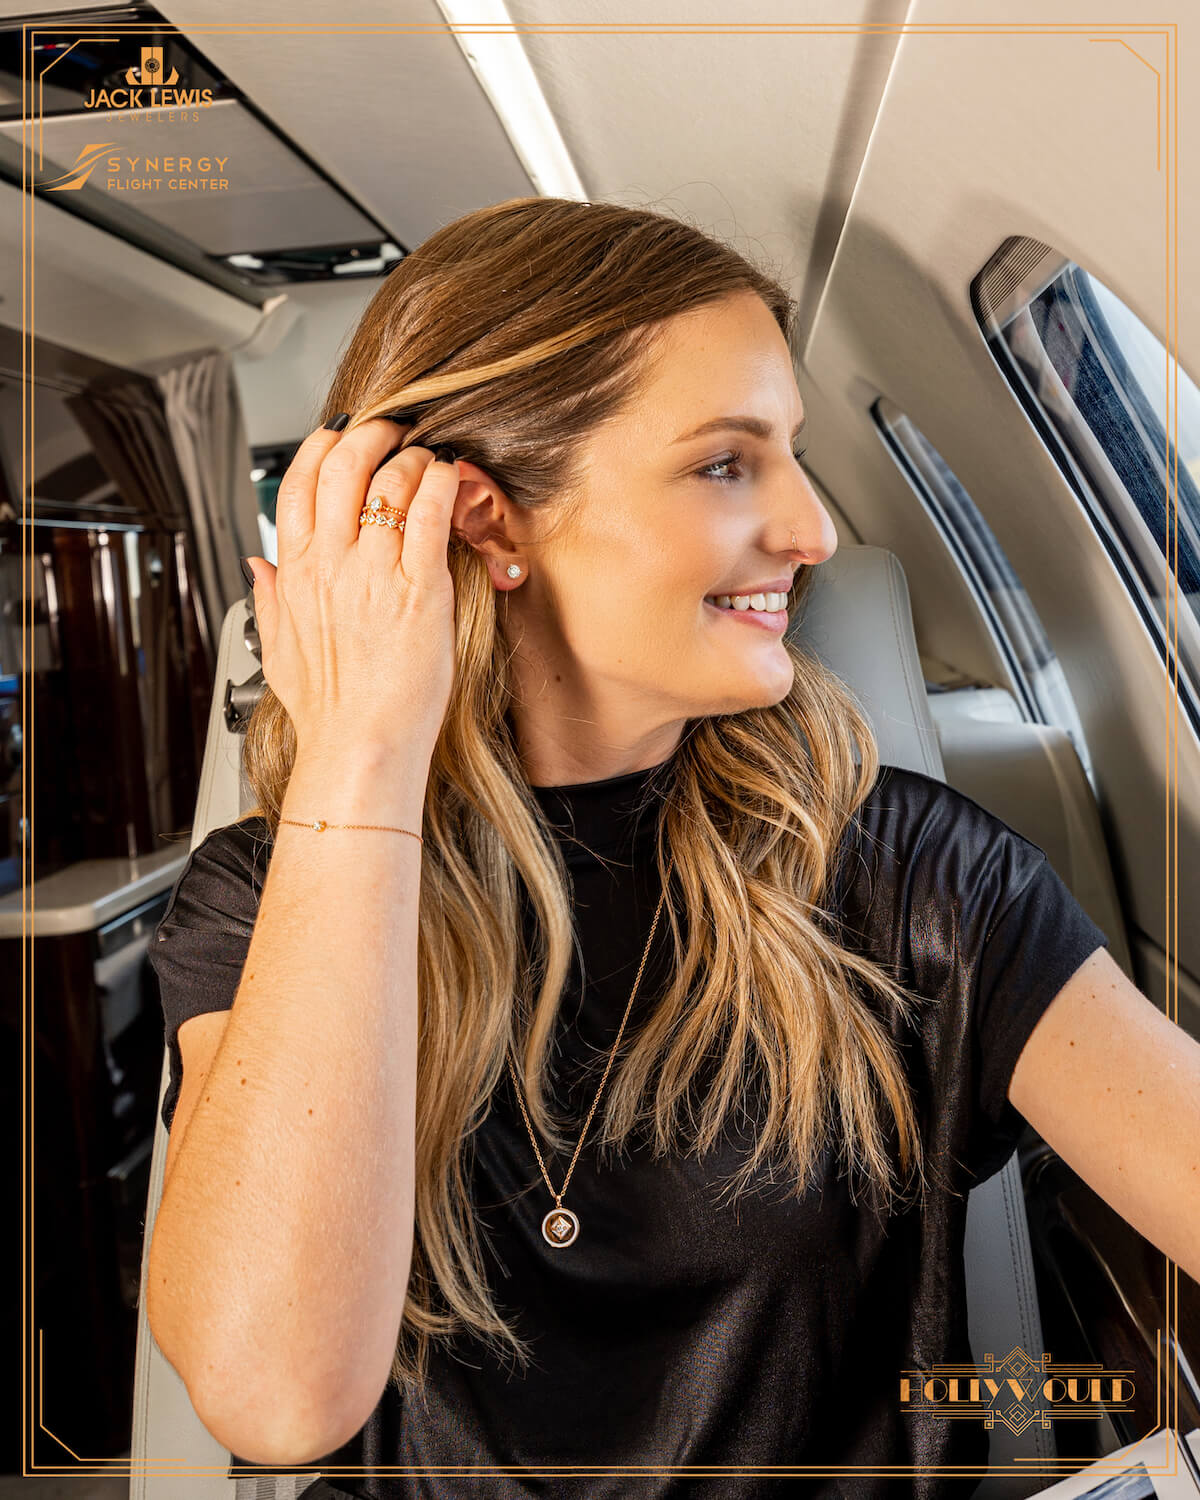 A young woman with long brown hair pulls her hair back to reveal a diamond stud earing and you can see the diamond rings and bracelet she is wearing all from Debeers Forevermark. She is sitting in a private yet from Synergy Flight Center in Bloomington Illinois and smiling as she looks out the window.